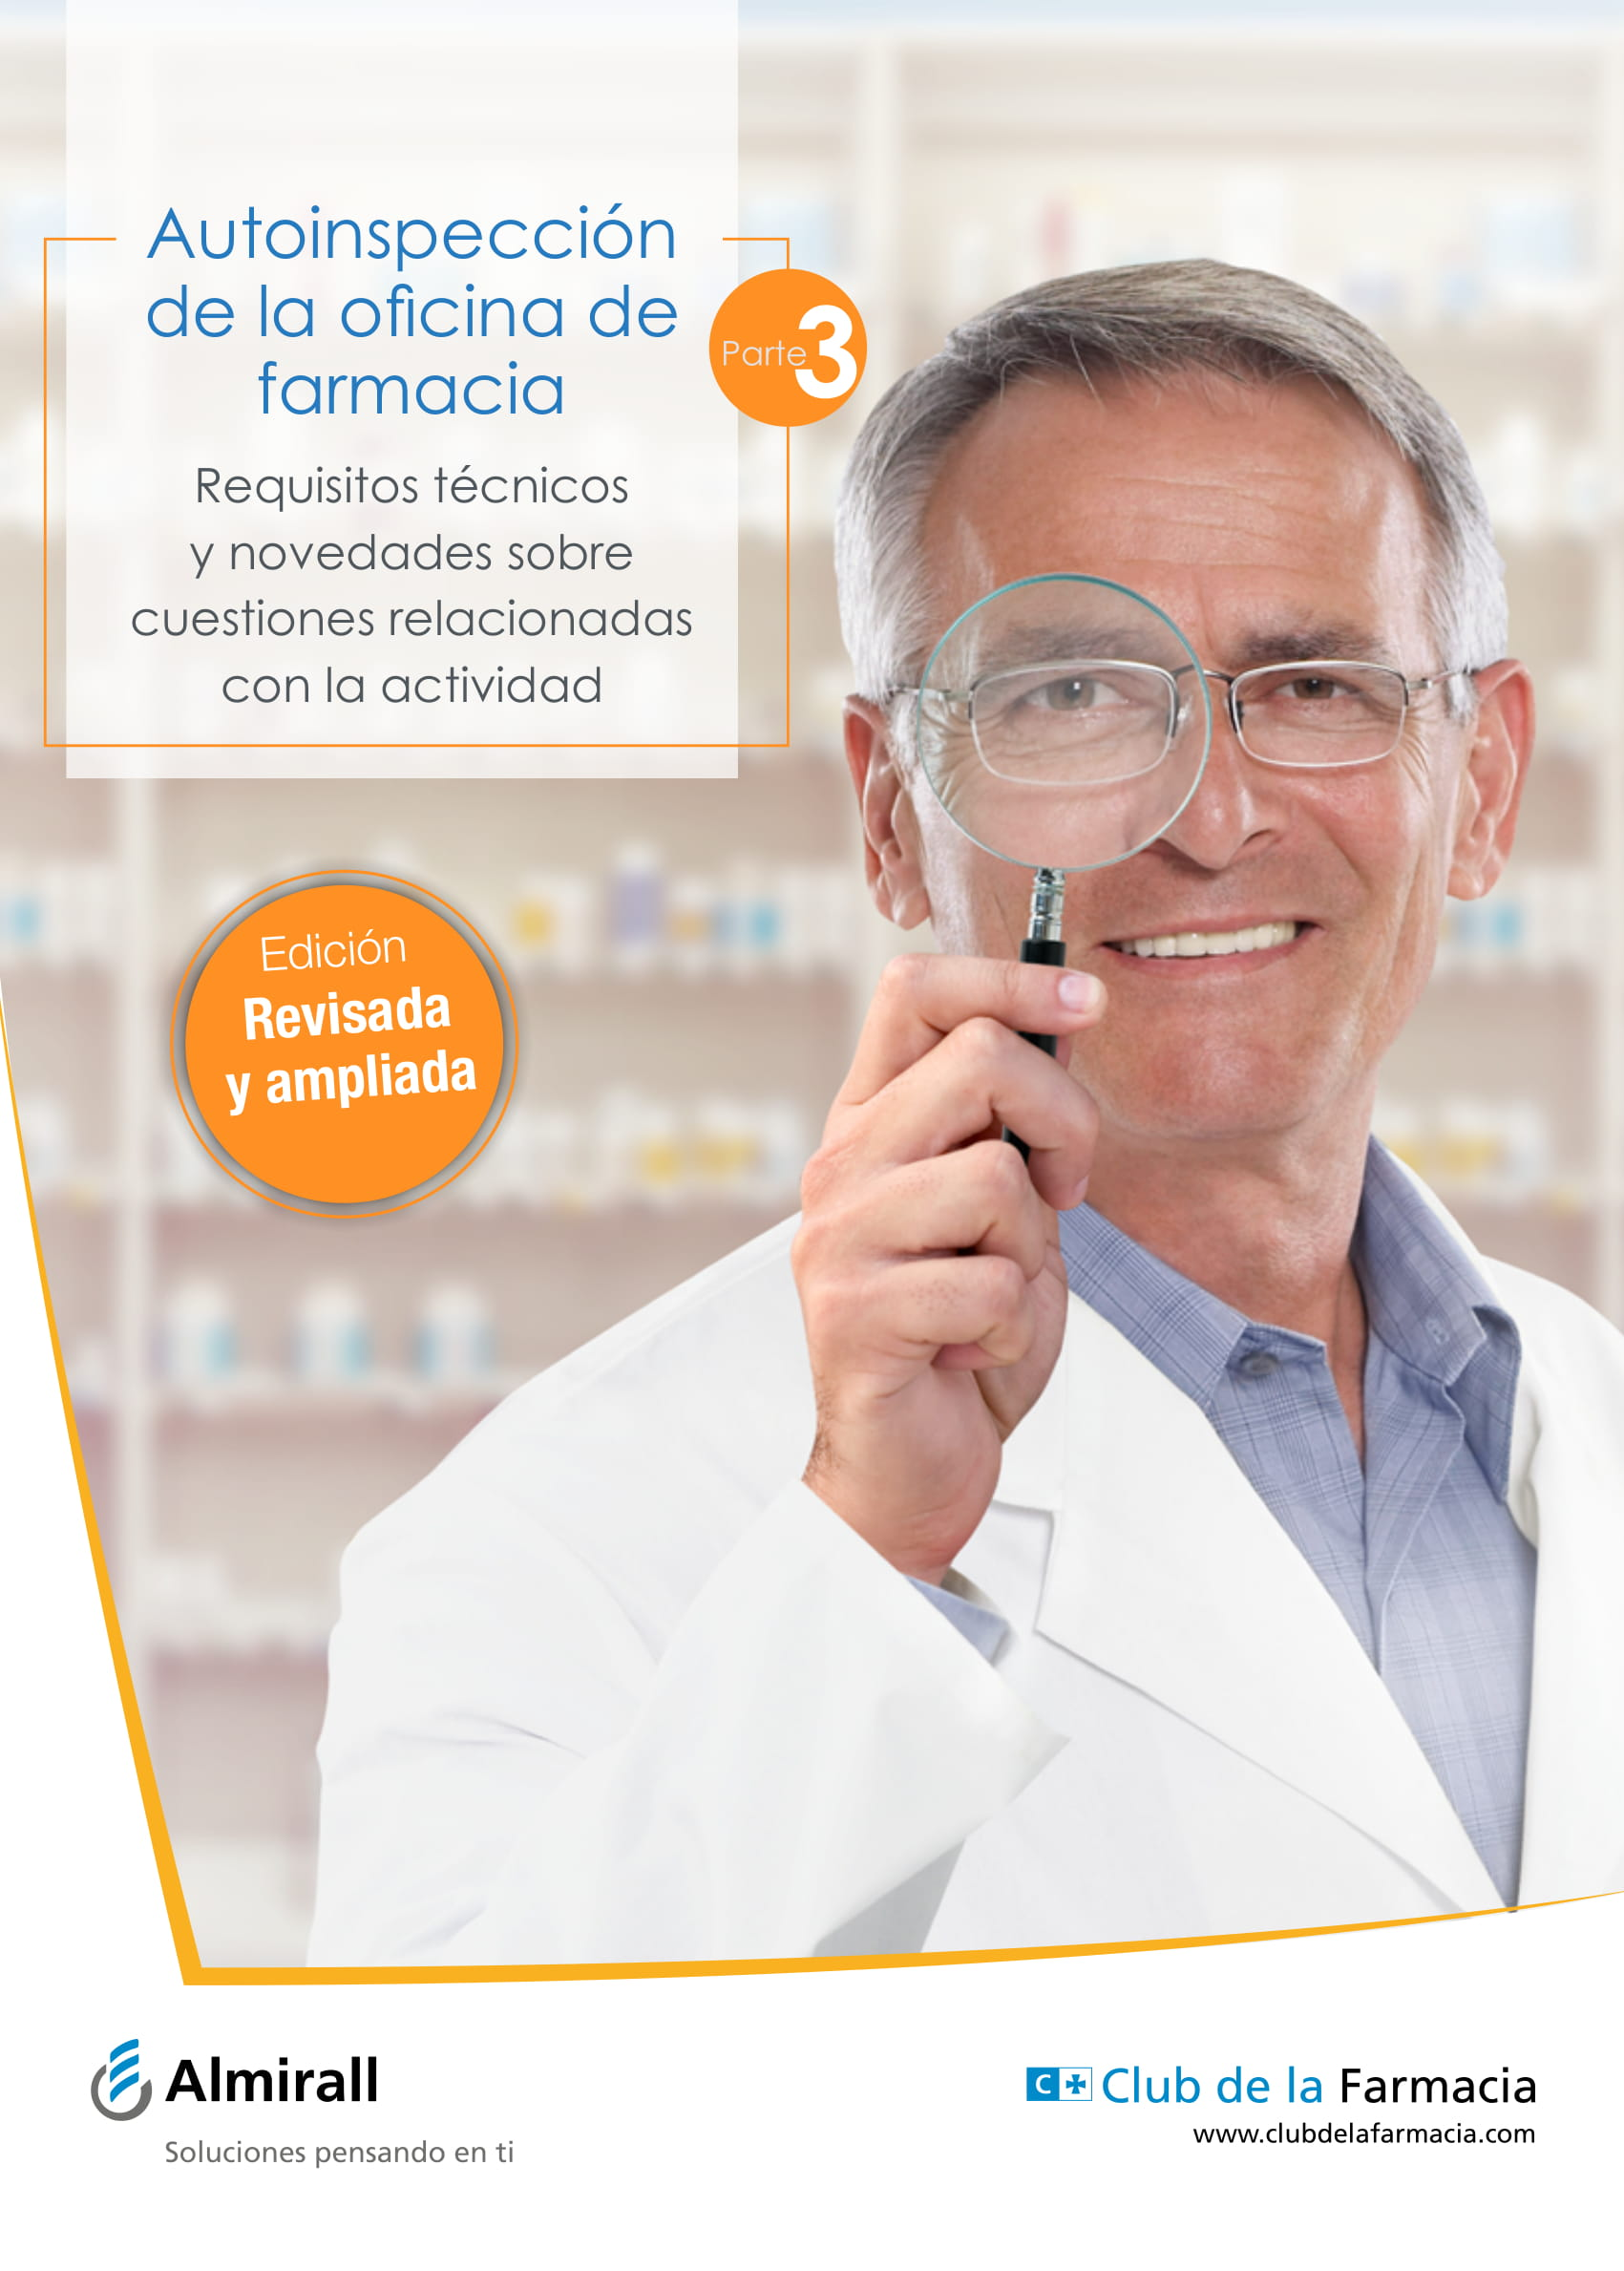 Ebooks-Club de la Farmacia-31.jpg